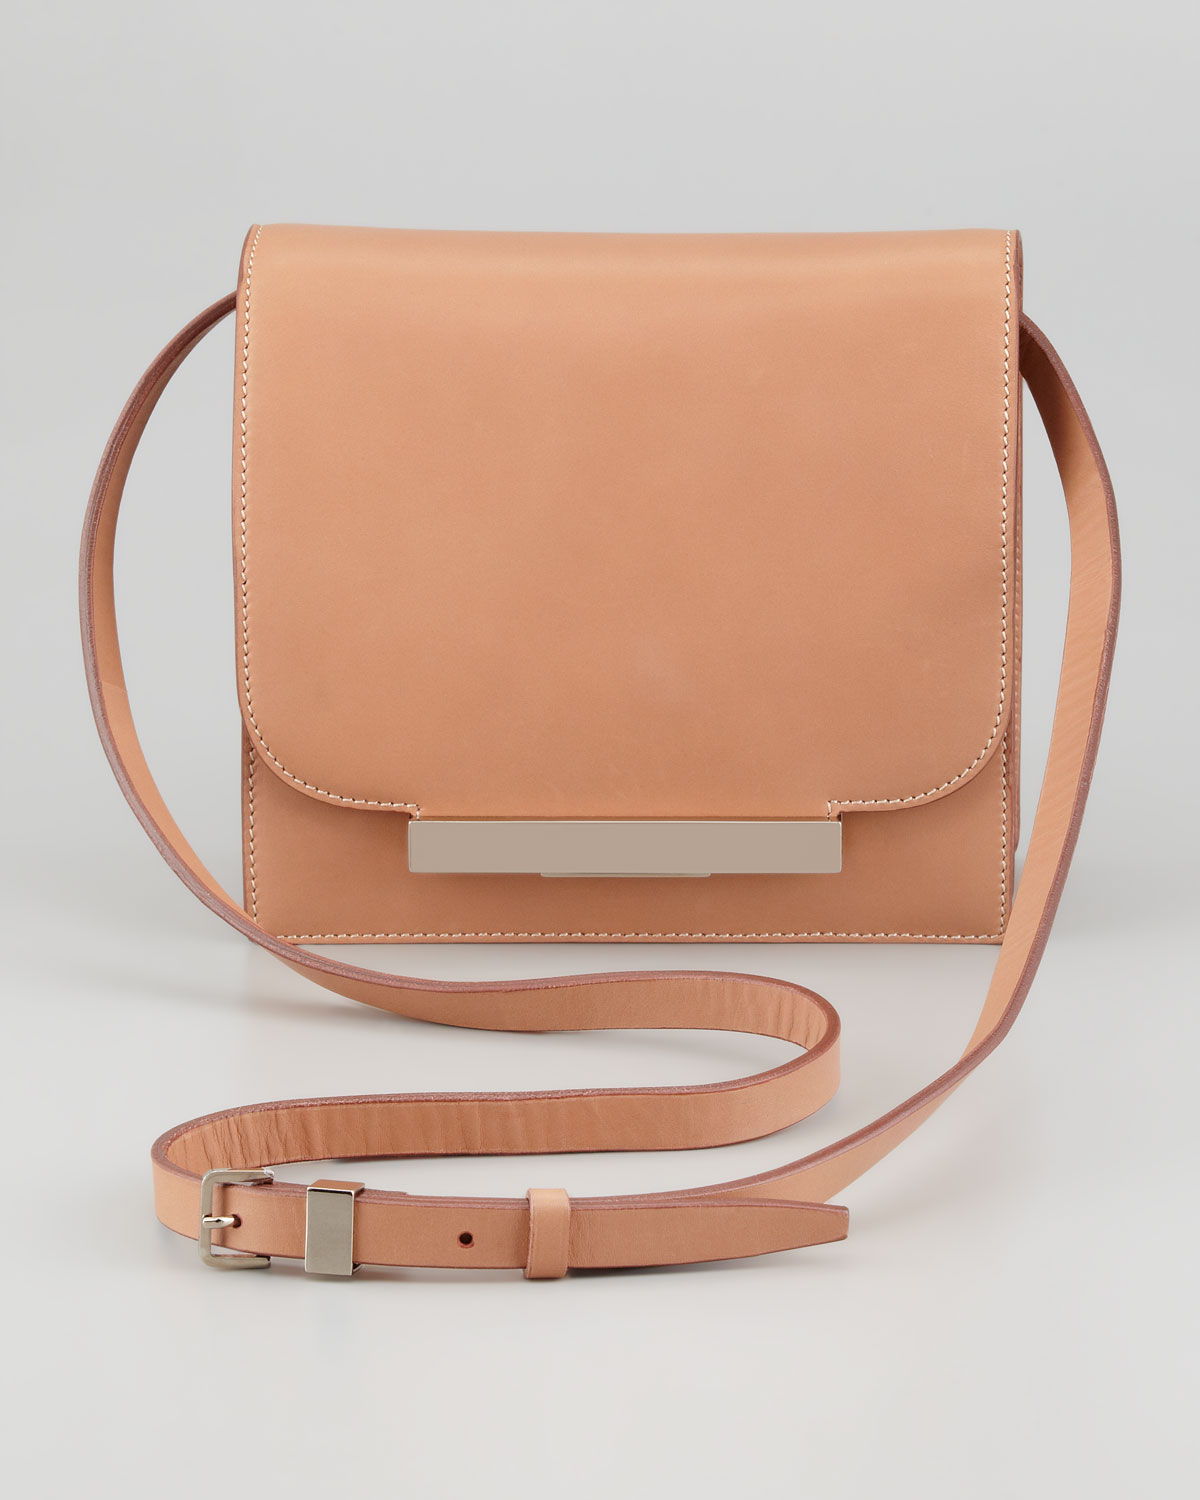 Classic Brown Leather Shoulder Bag Coach Crossbody